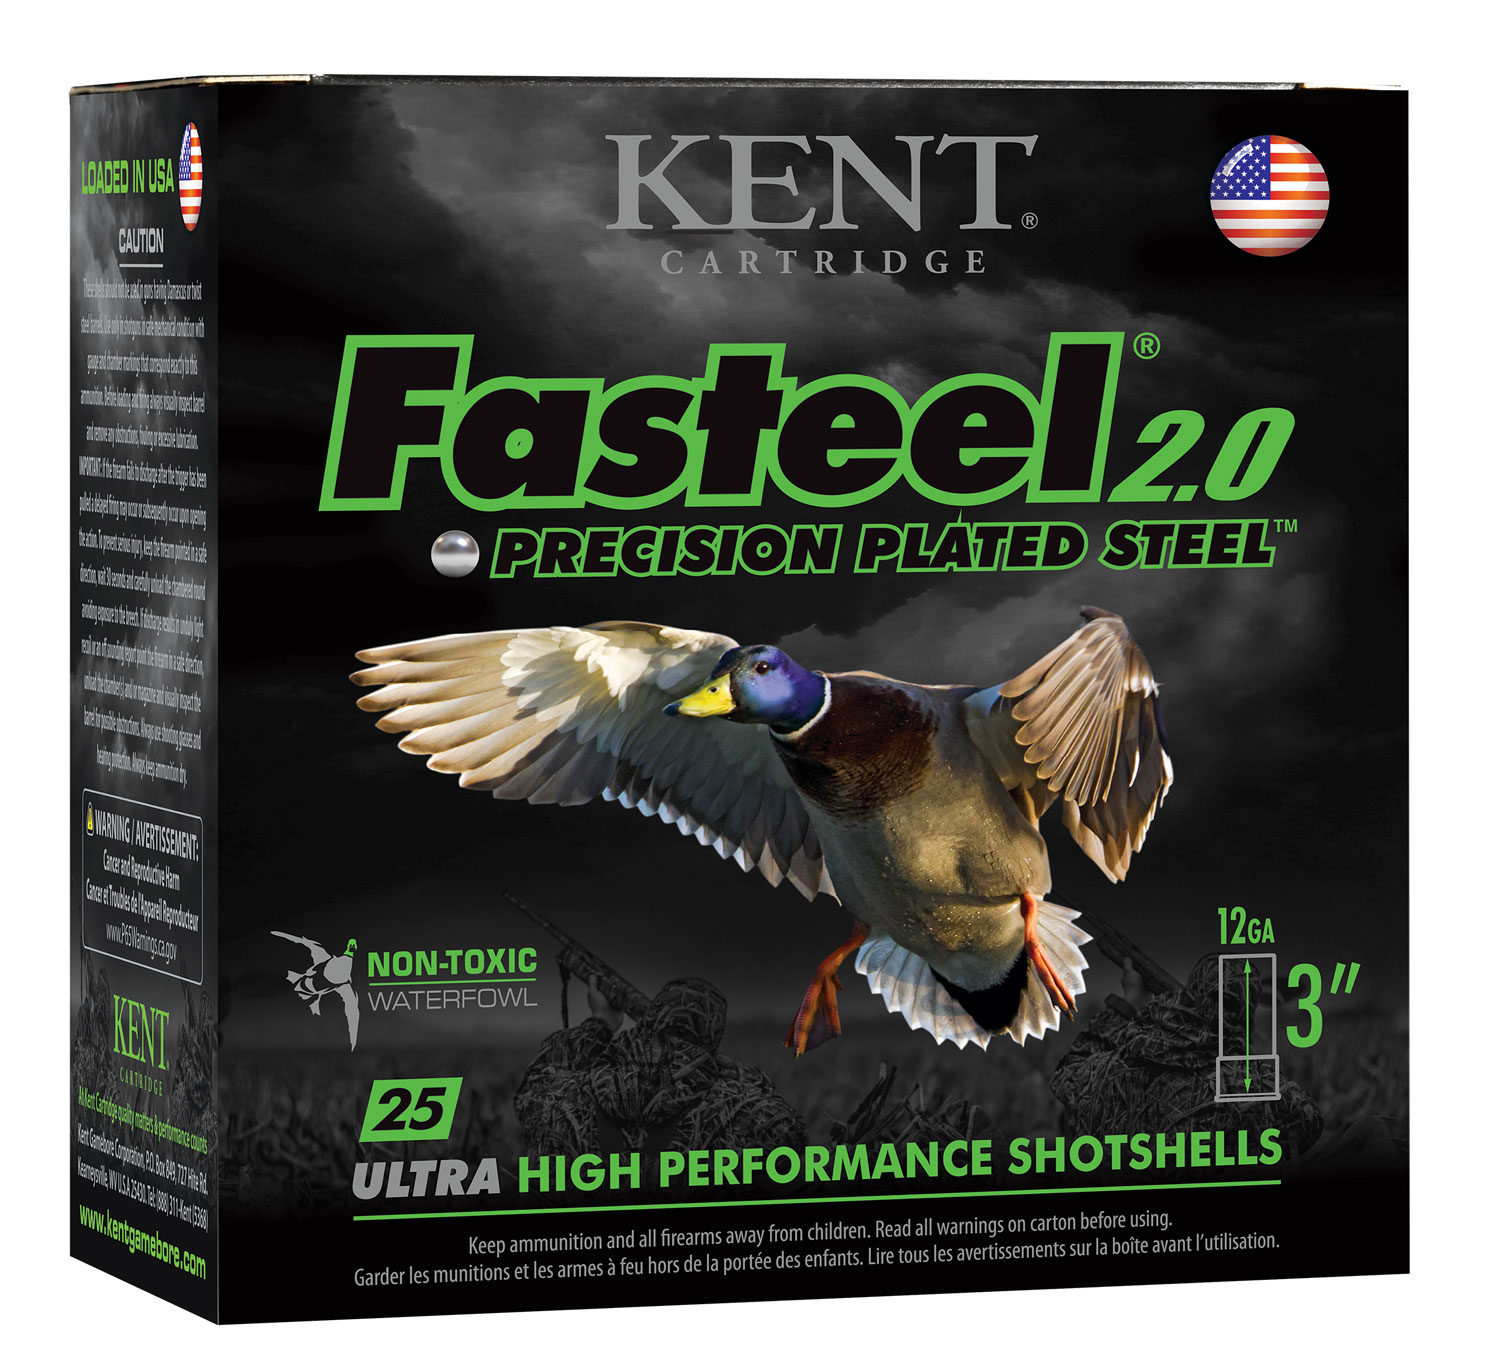 Kent Cartridge K123FS404 Fasteel Waterfowl 12 Gauge 3